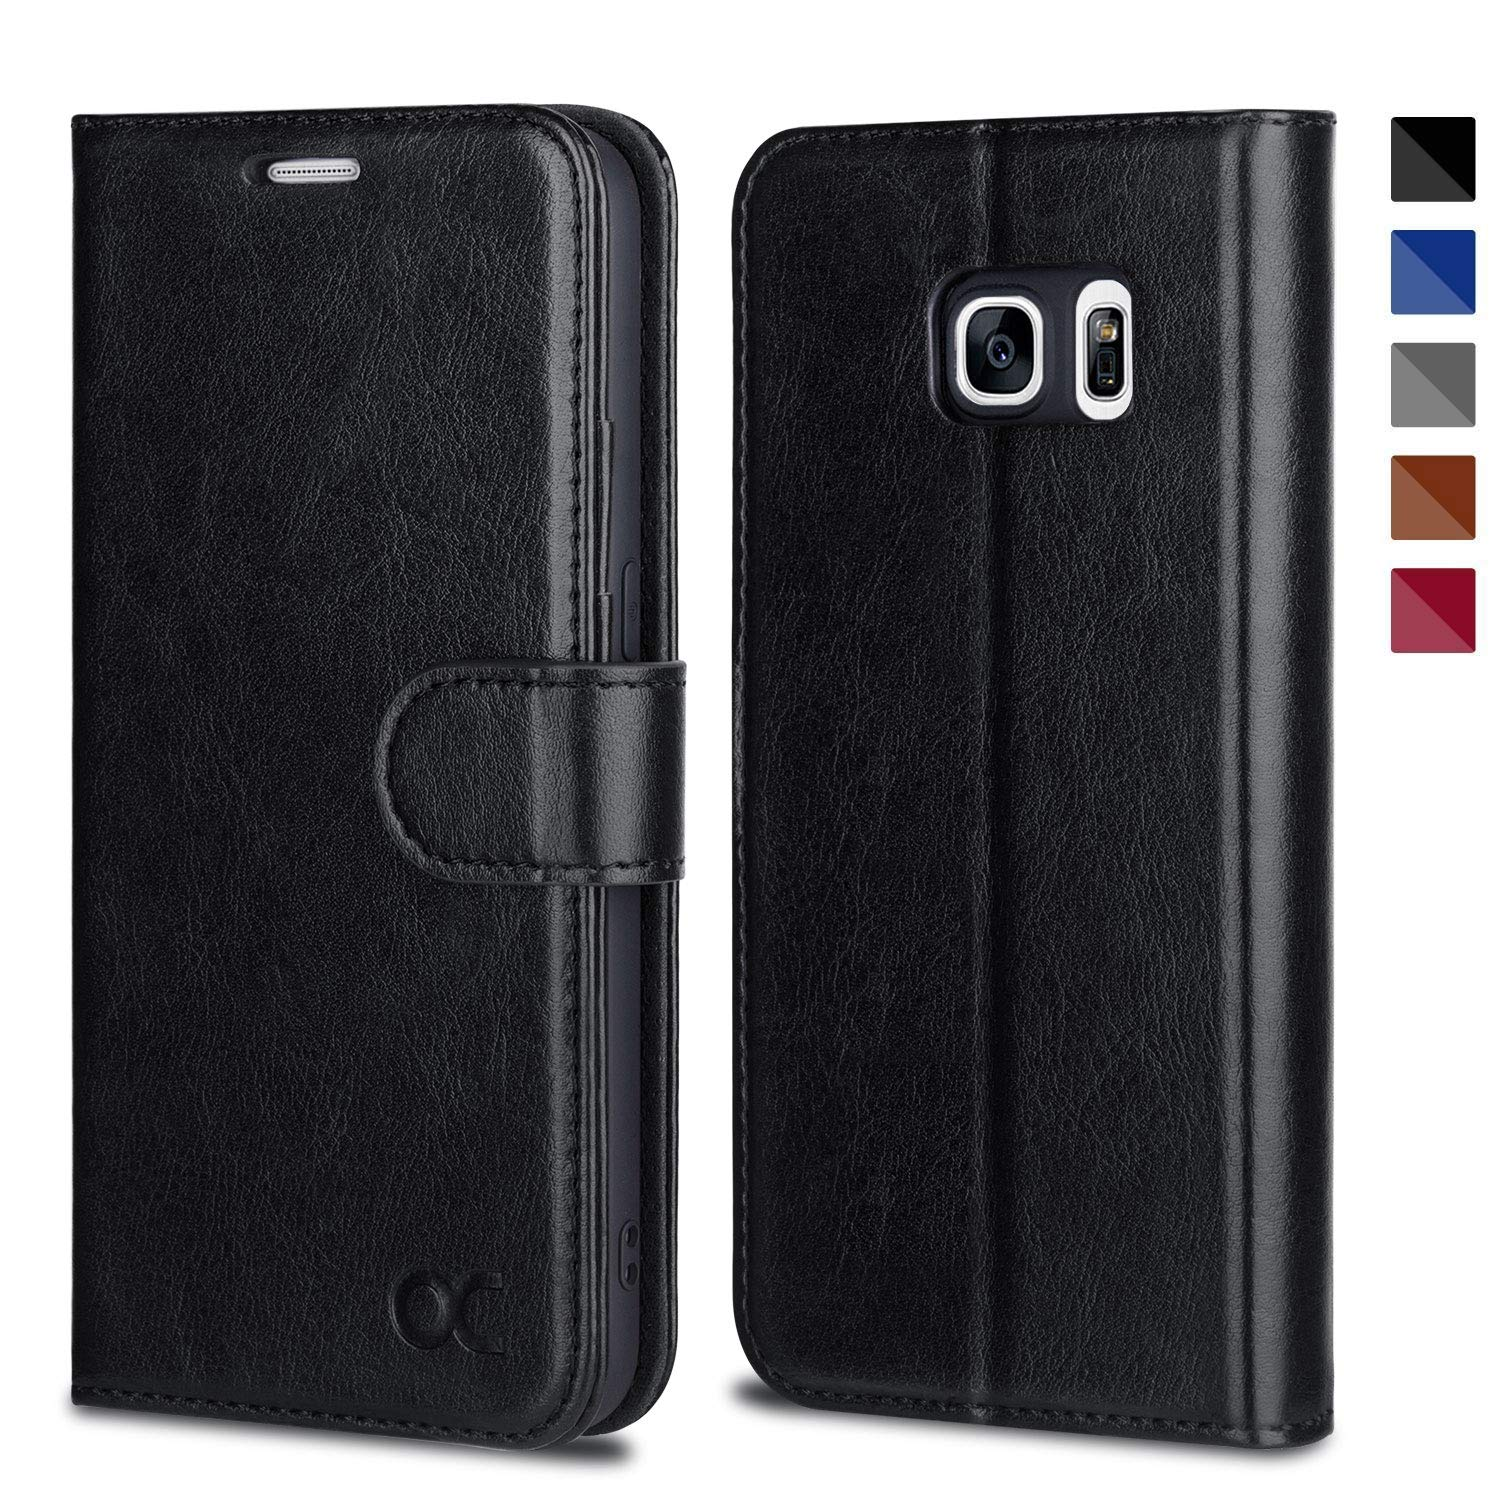 OCASE Samsung Galaxy S7 Case [ Card Slot ] [ Kickstand ] Leather Flip Wallet Case for Samsung Galaxy S7 - Black by OCASE